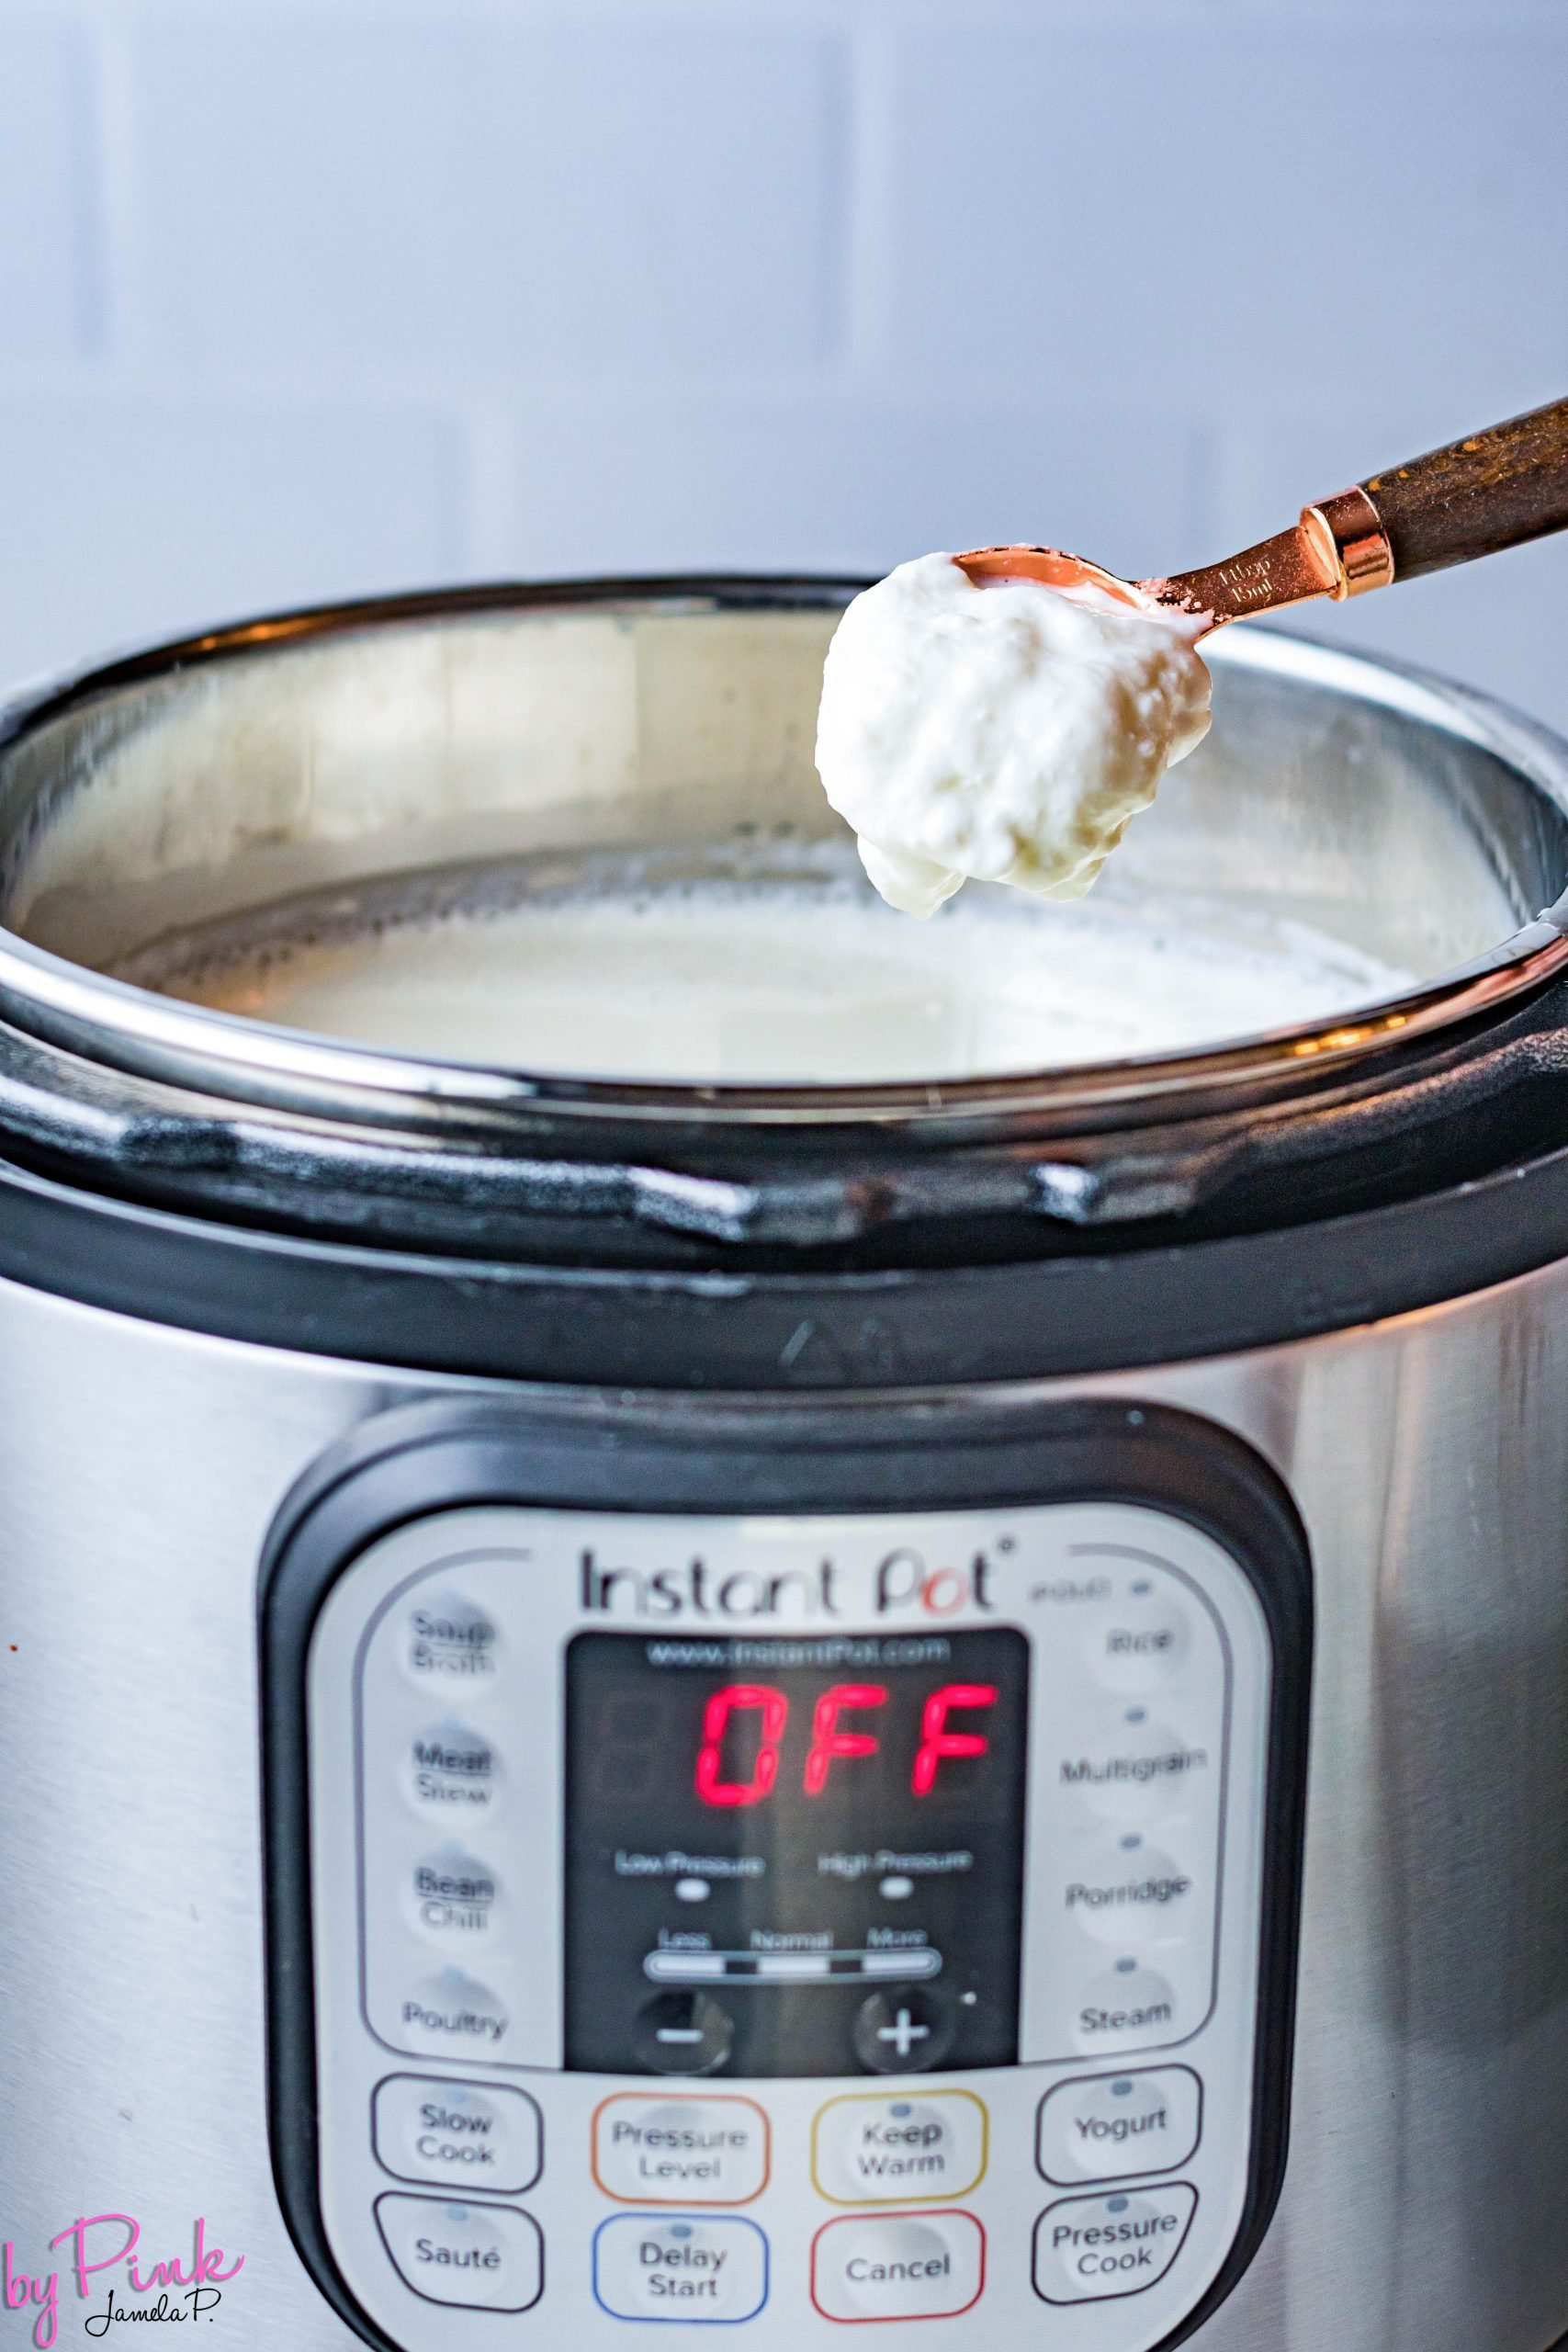 making yogurt in the instant pot by adding starter cultures